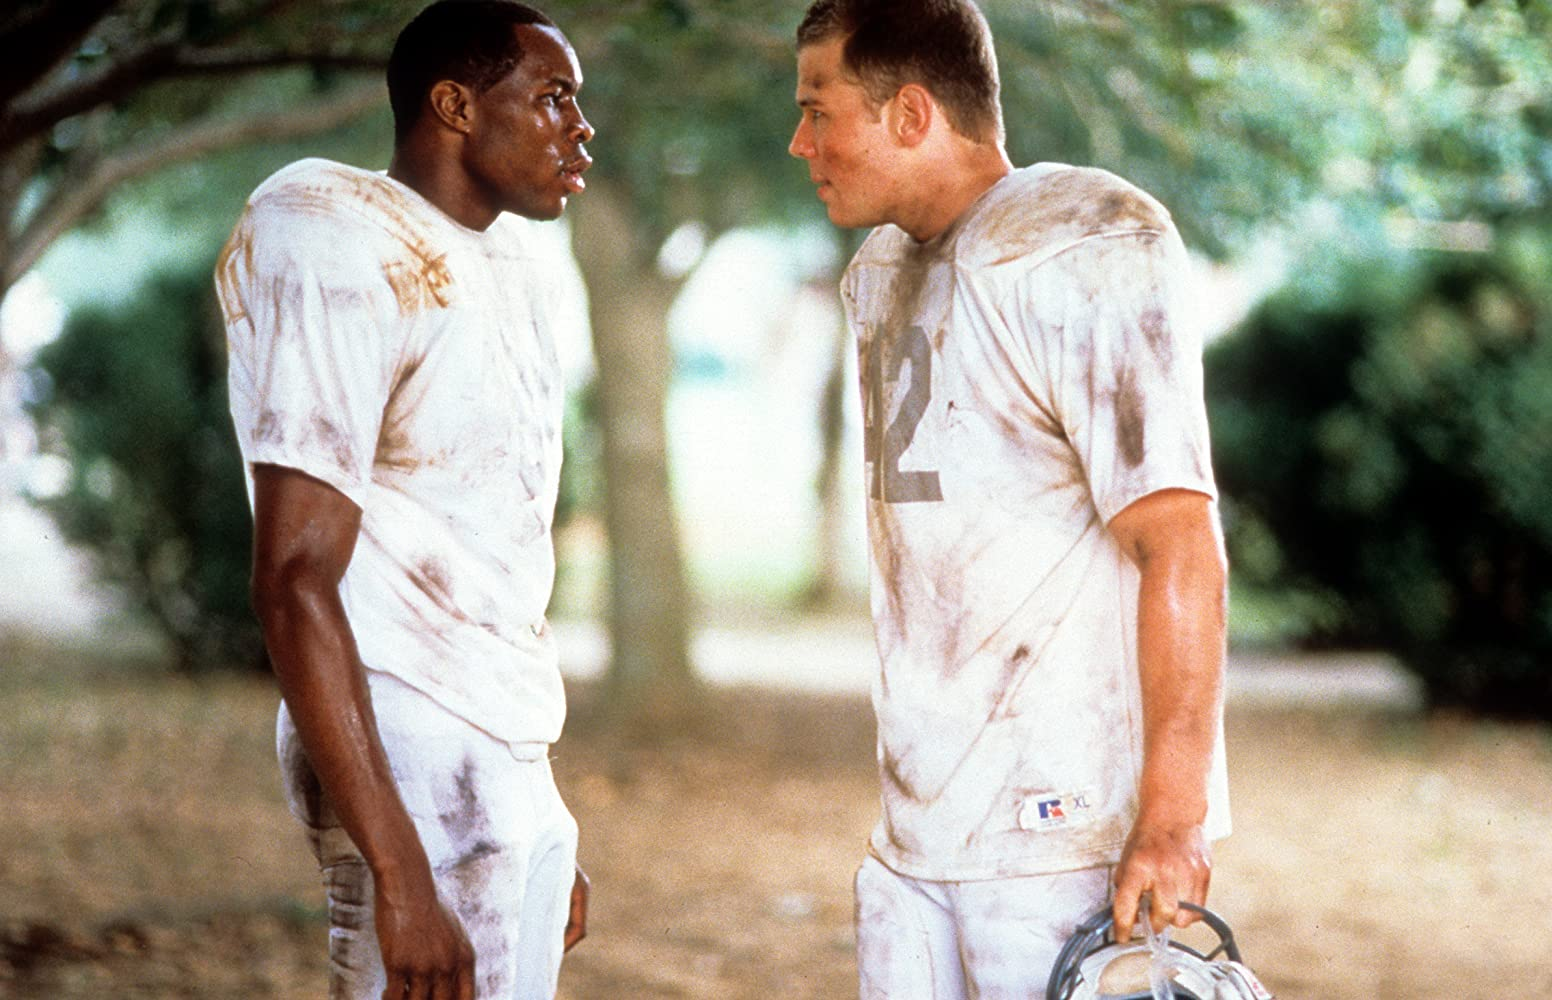 Wood Harris and Ryan Hurst in Remember the Titans (2000)